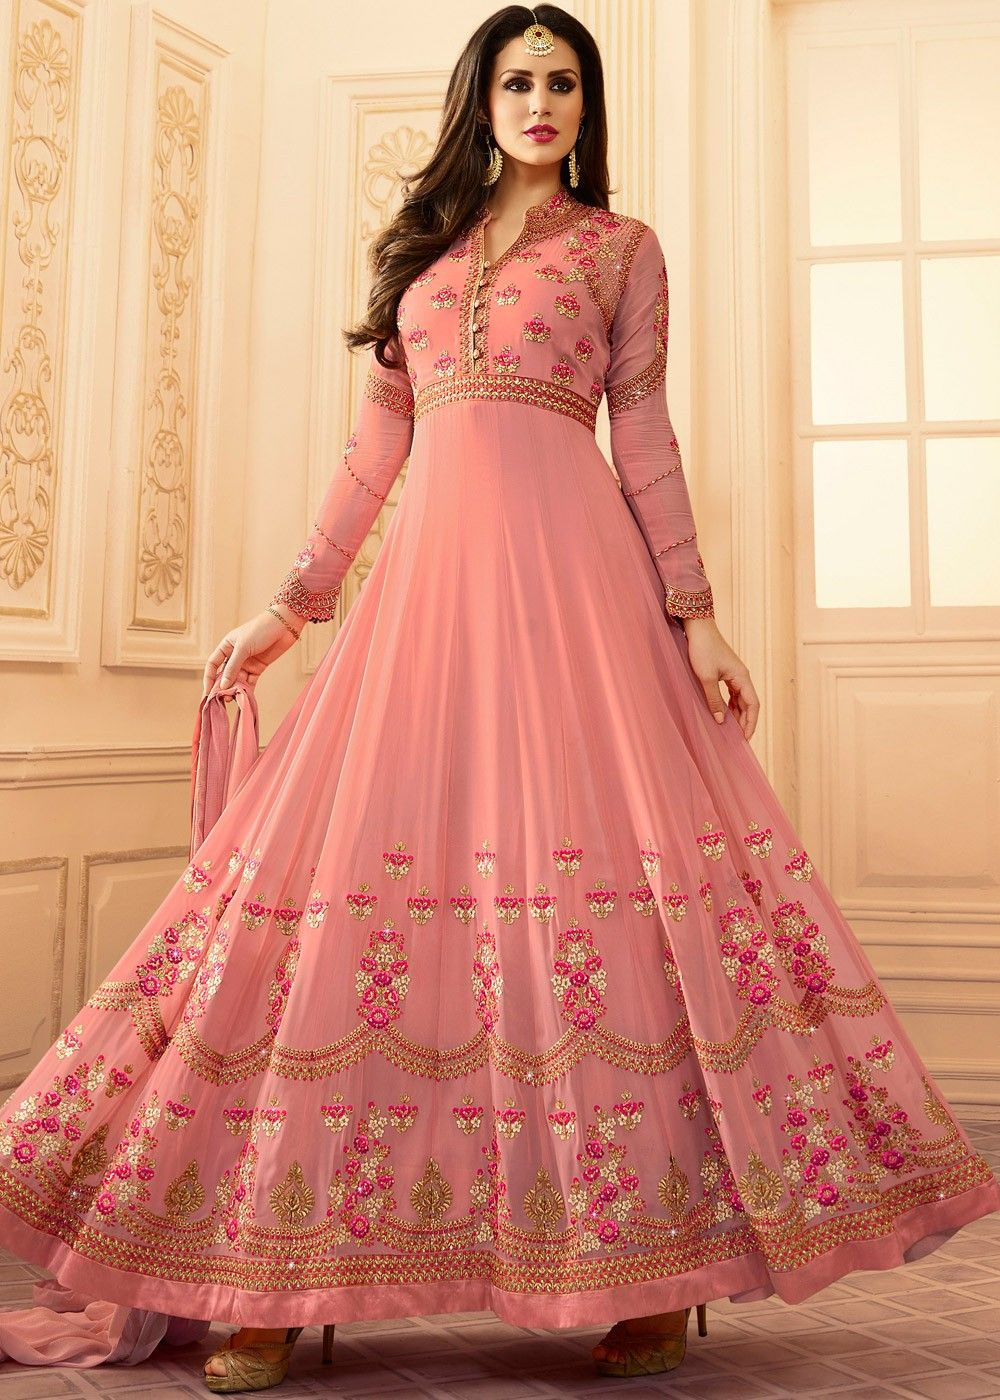 da01712d60 Light #pink full length #abaya style #kameez in #georgette embellished with  detailed #resham #embroidery and stone work.